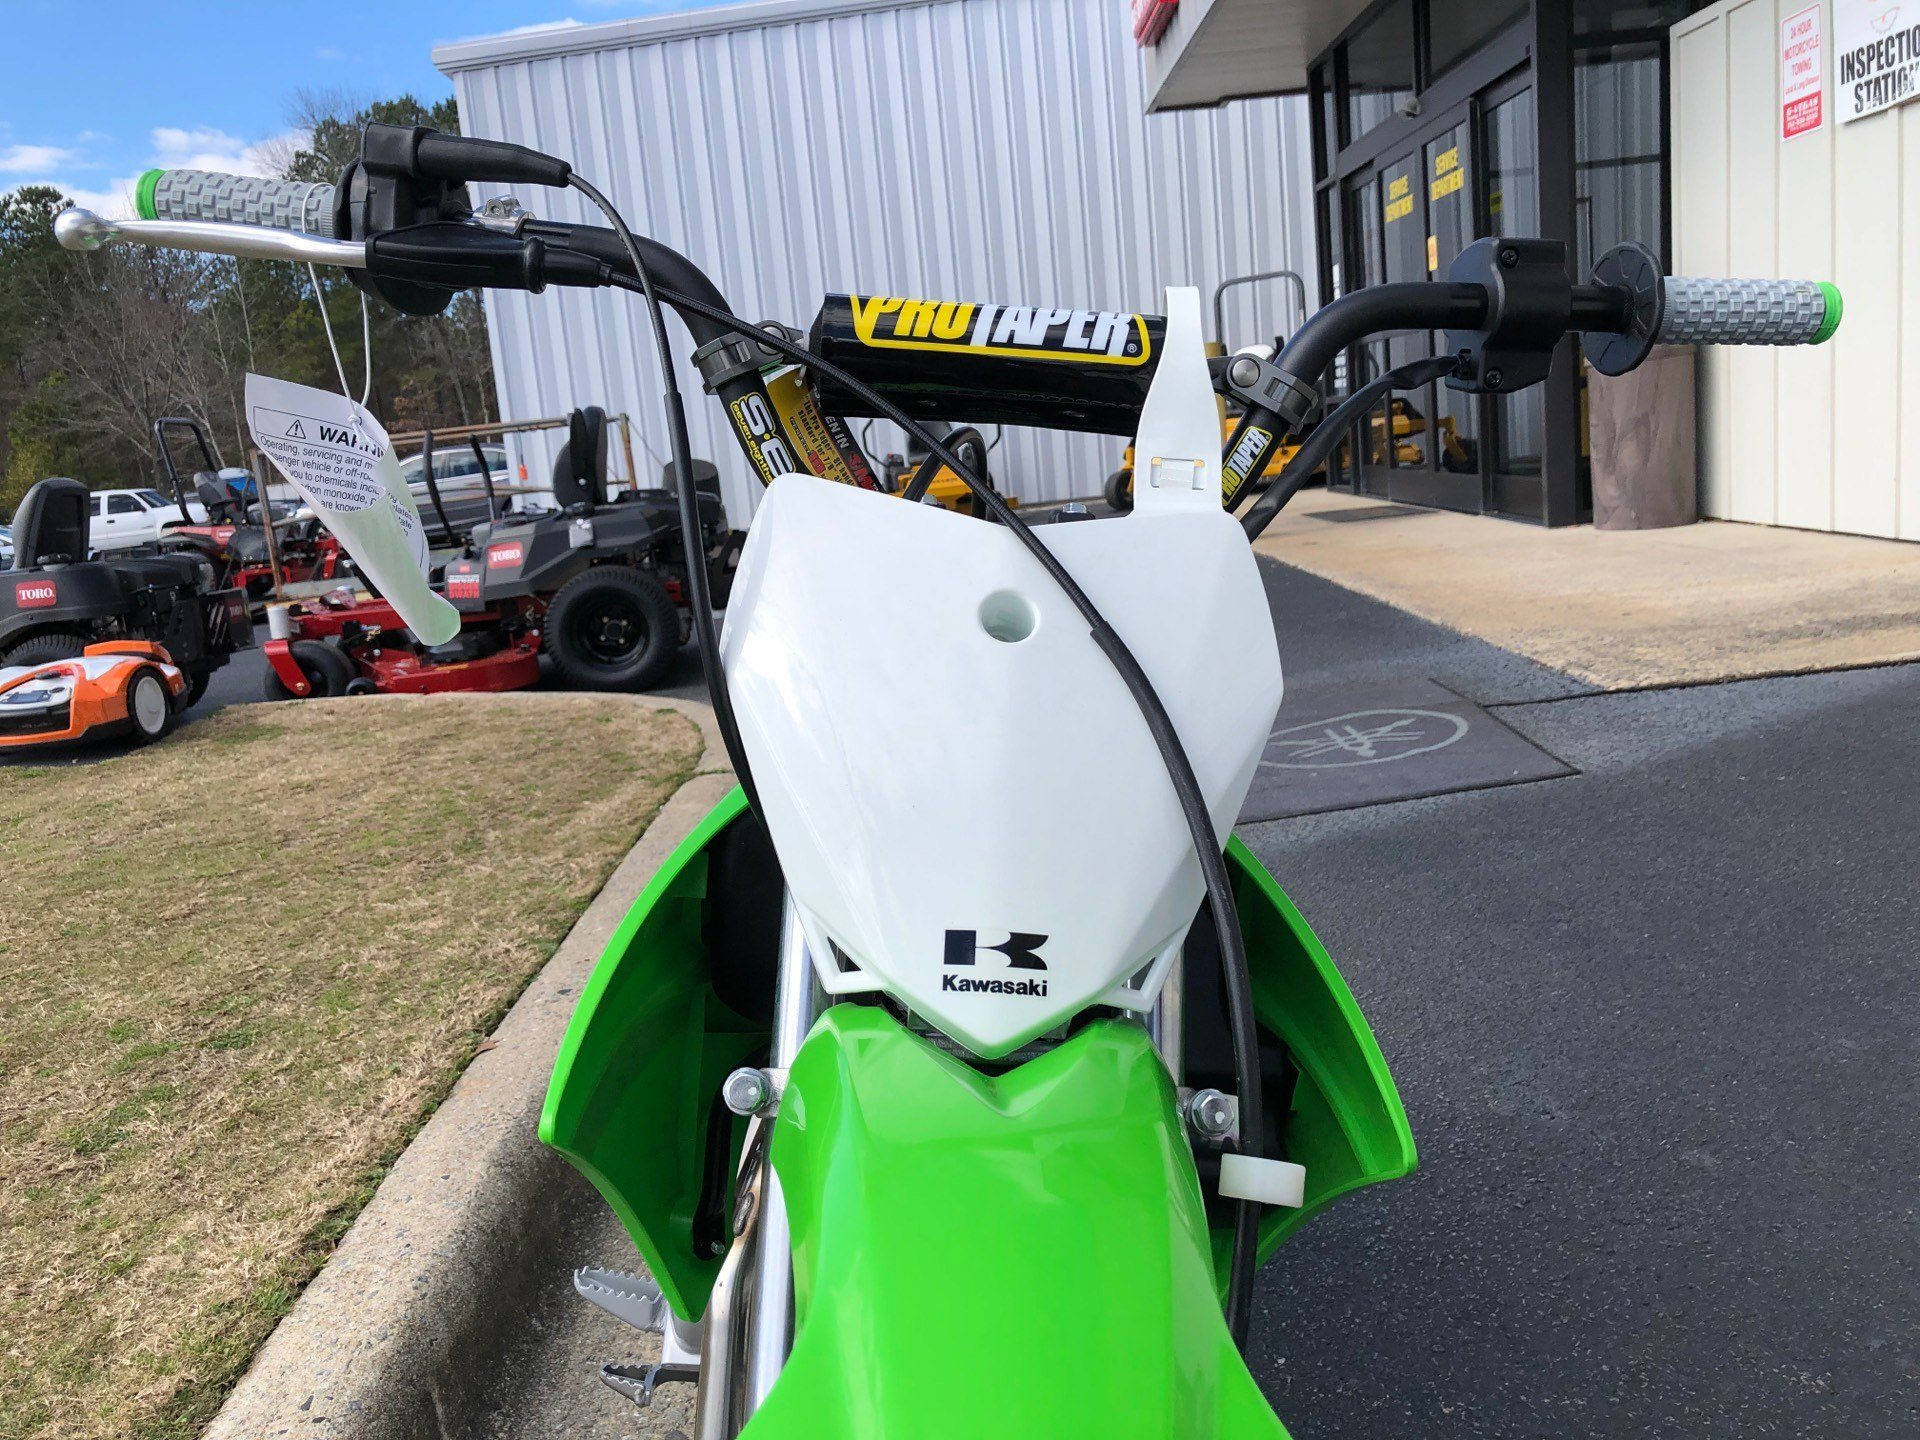 2020 Kawasaki KLX 110 in Greenville, North Carolina - Photo 14